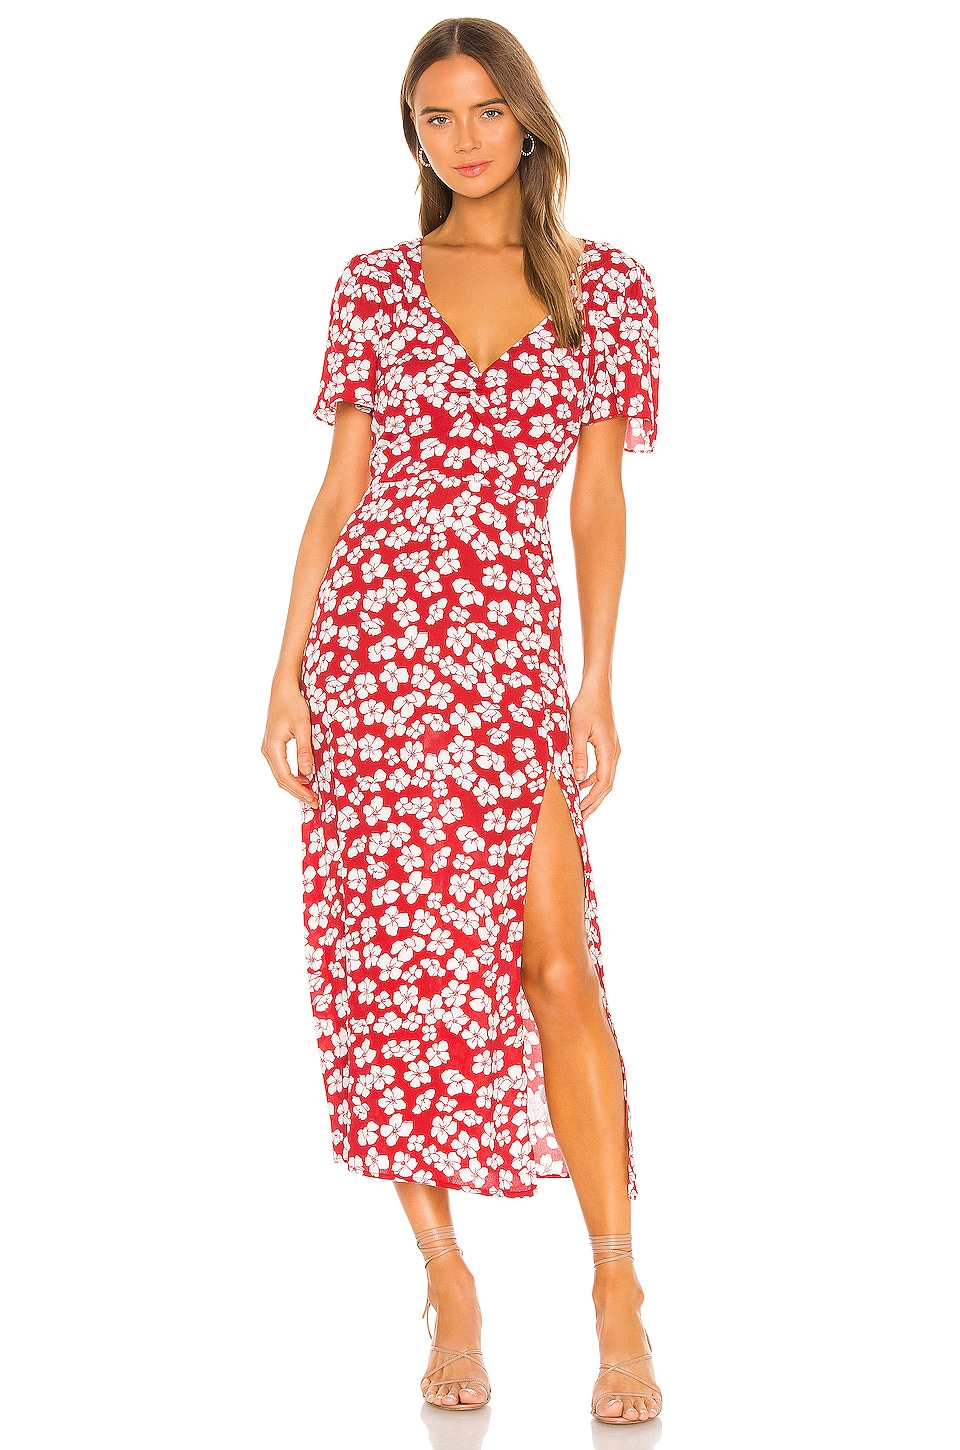 MINKPINK Between You And I Midi Dress in Red & White